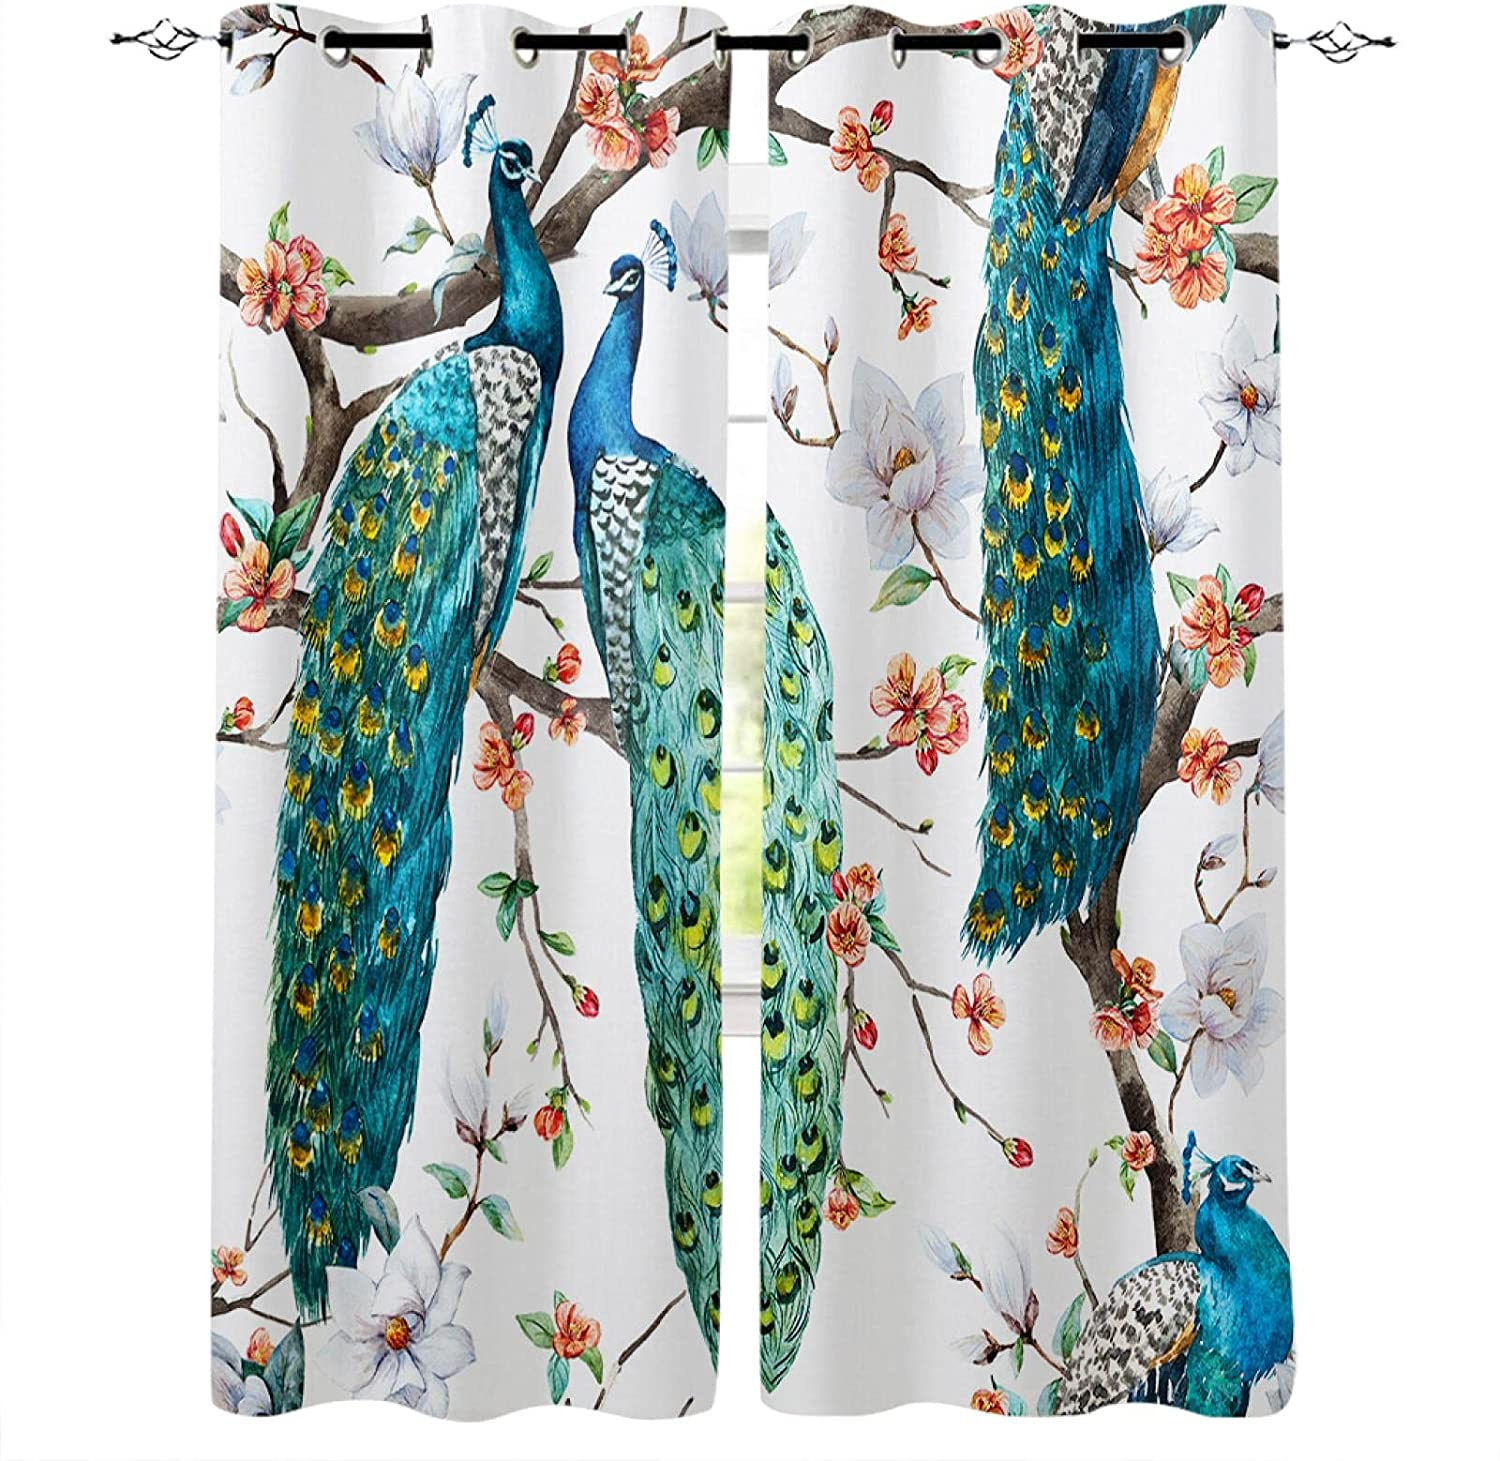 ZGCLHHM Blackout Curtains for Now Max 65% OFF free shipping Bedroom Animal Flower Blue Peacock